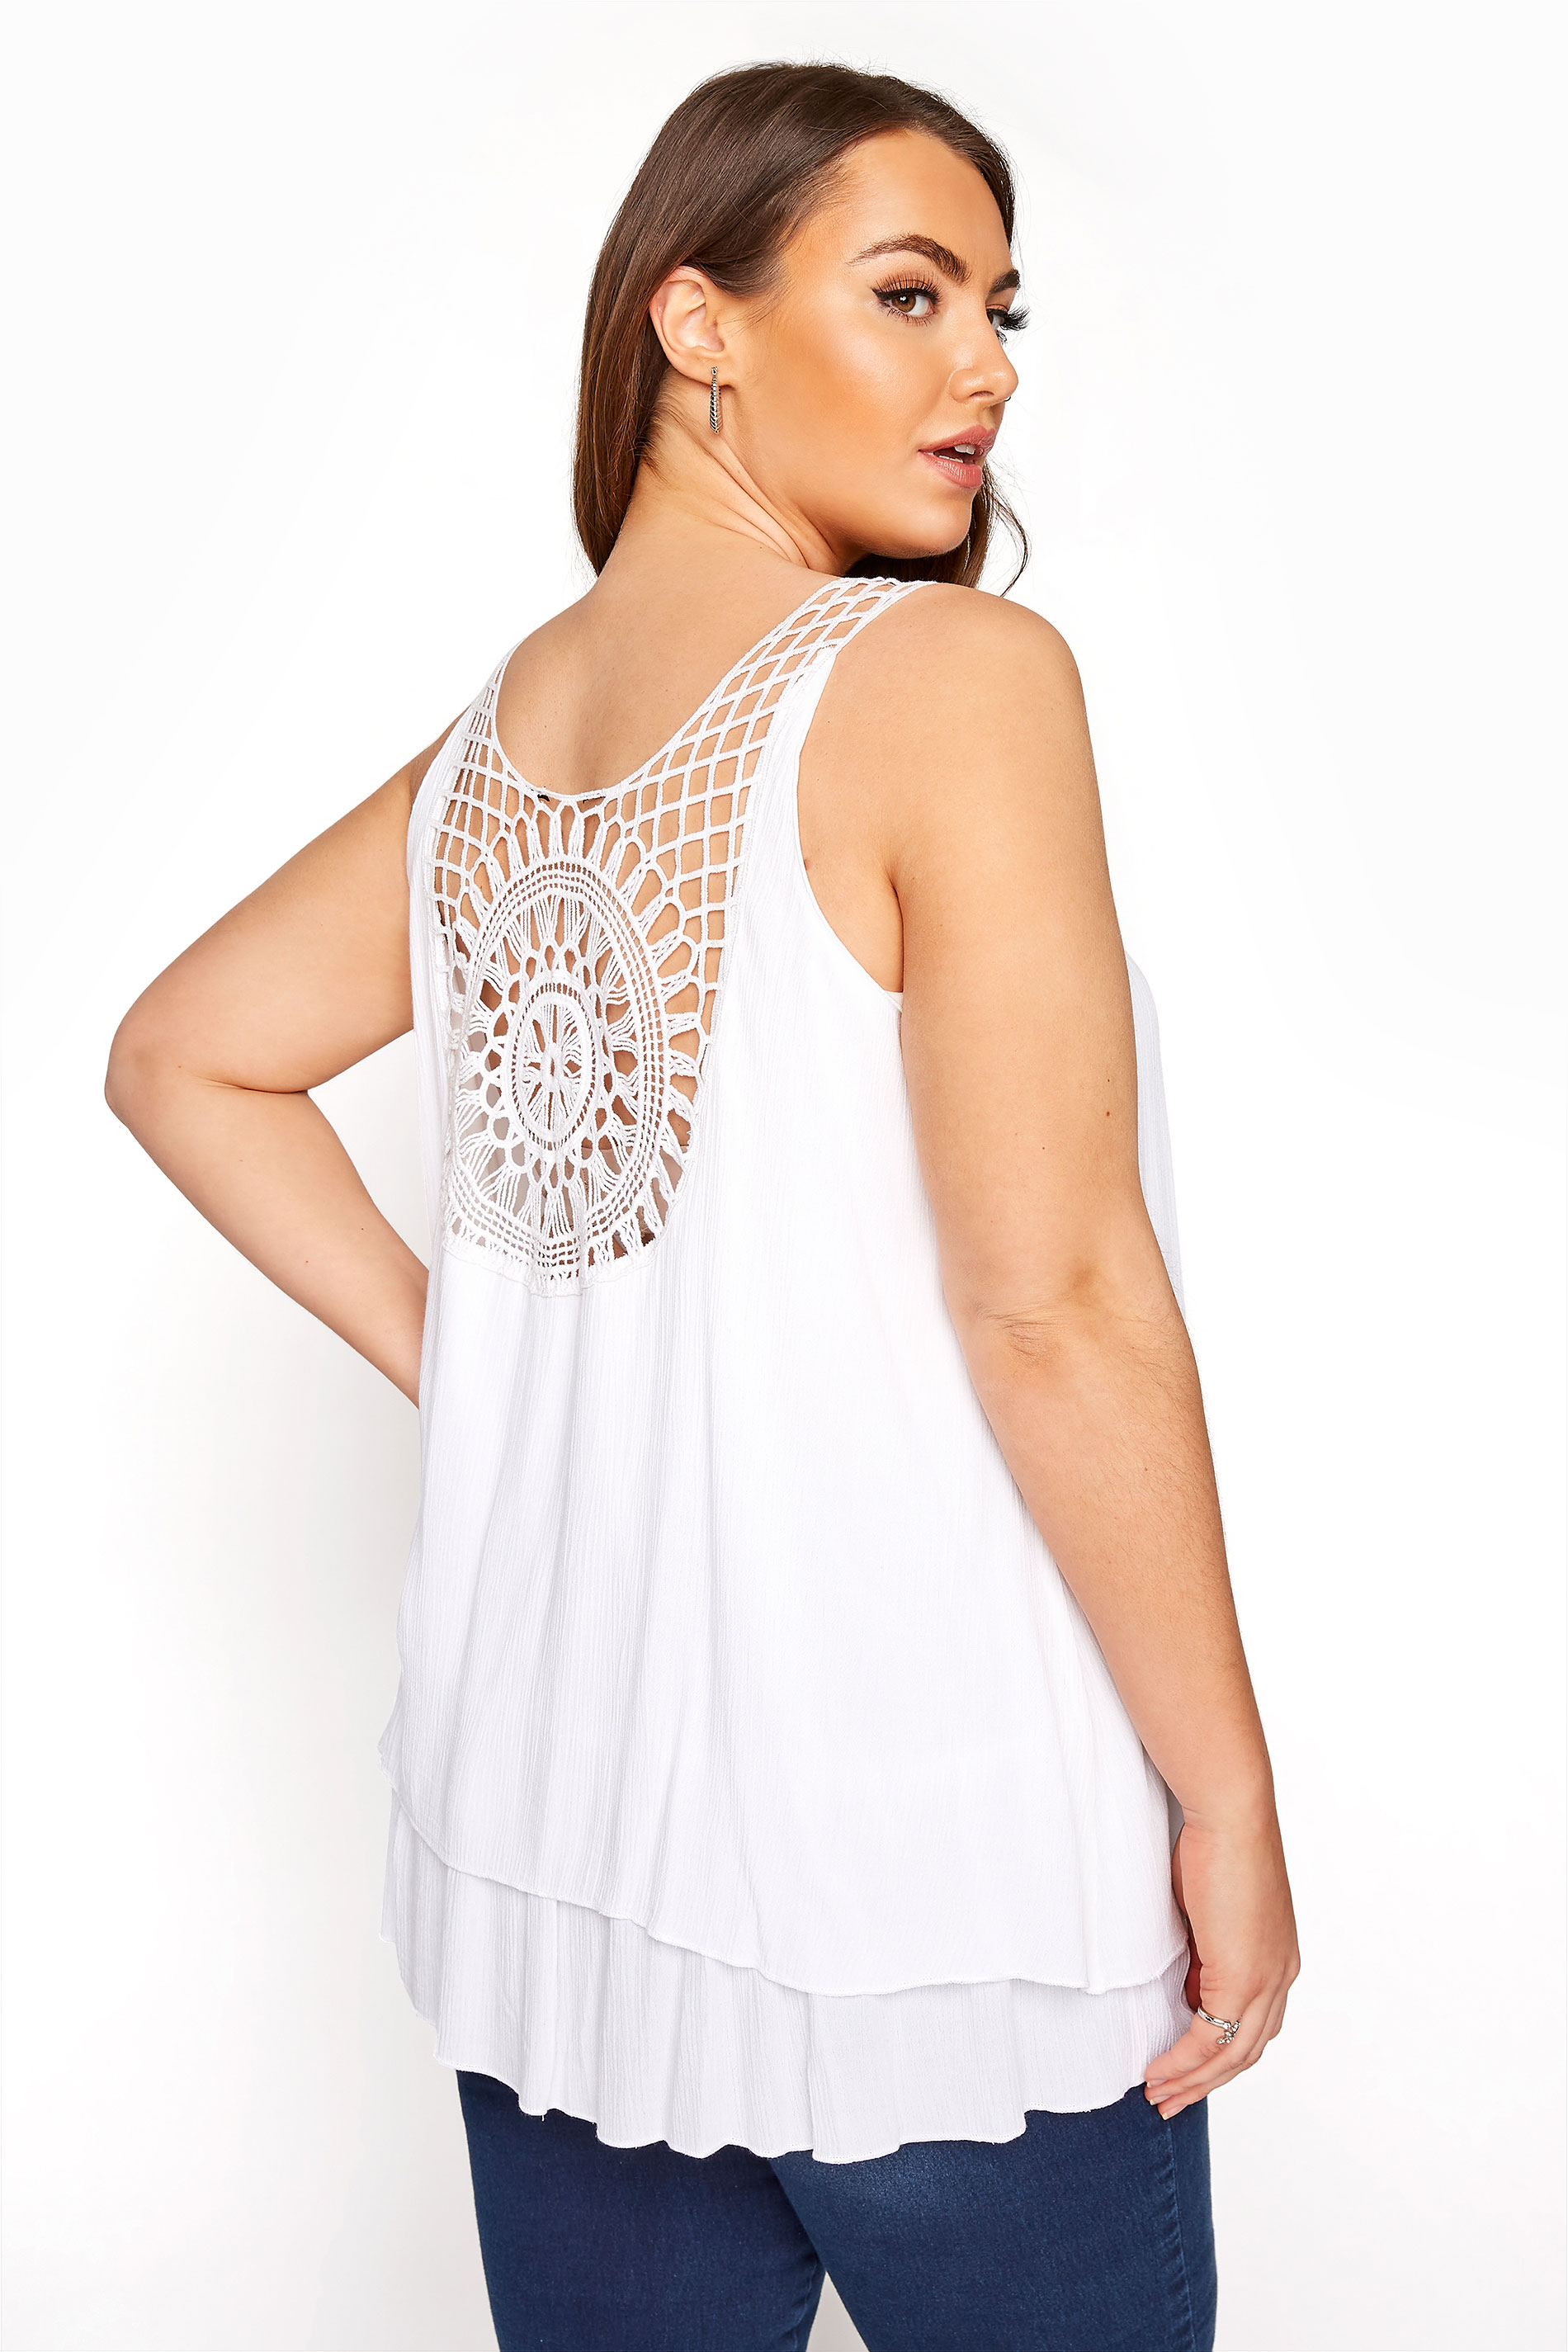 White Crochet Back Vest Top